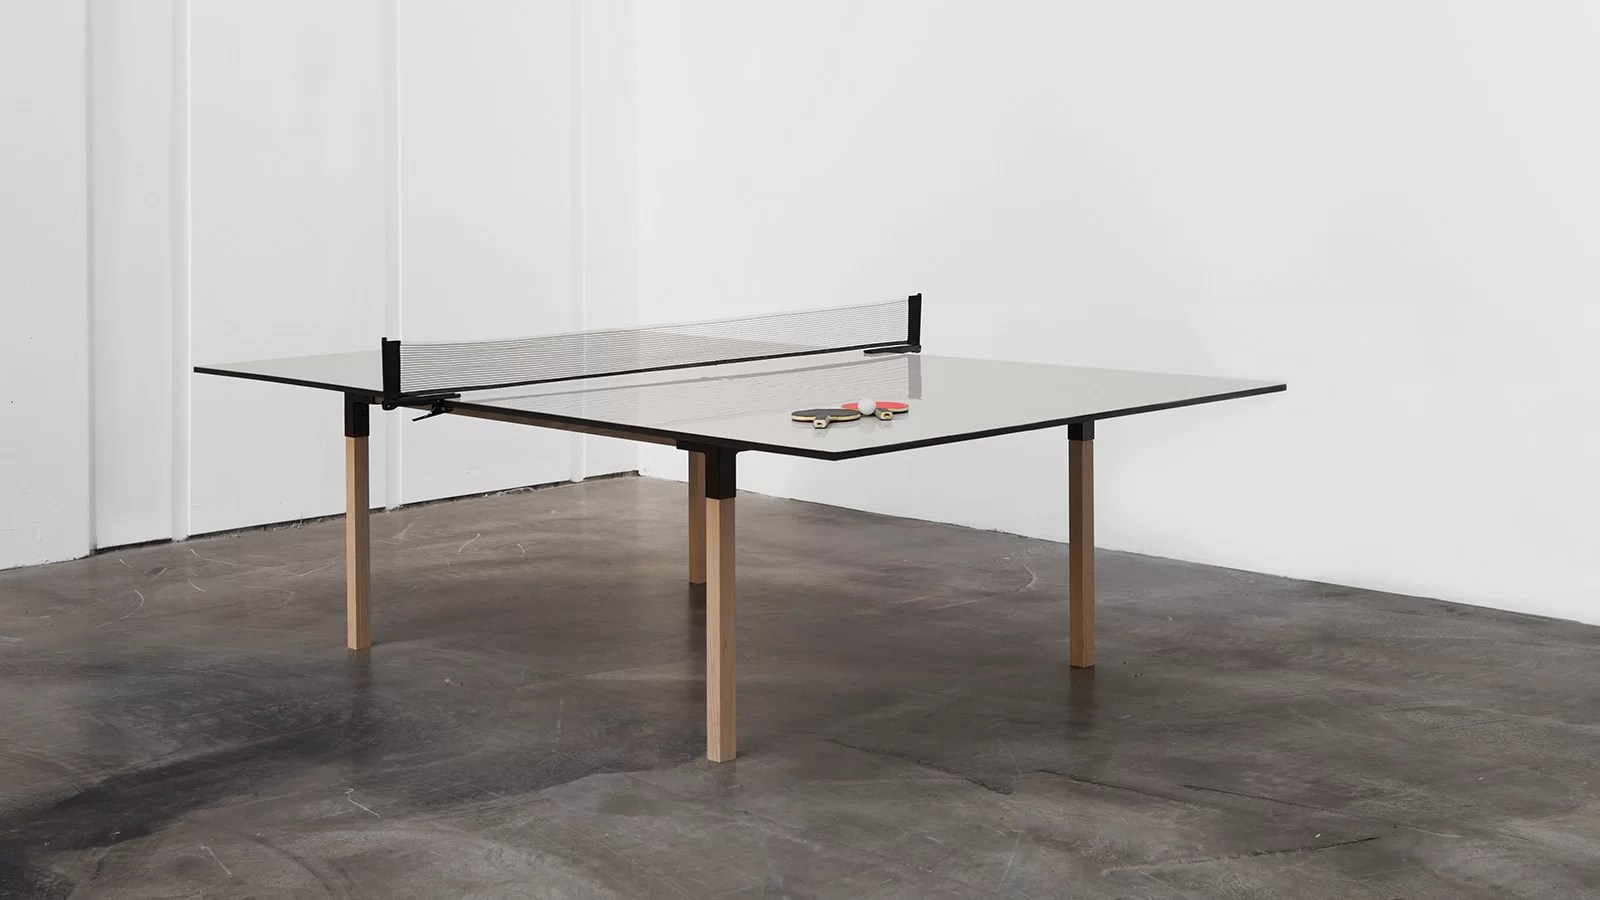 pull pong multi purpose table lets you play ping pong after dinner murphy kitchen table Pull Pong Table Transformable Dining Table